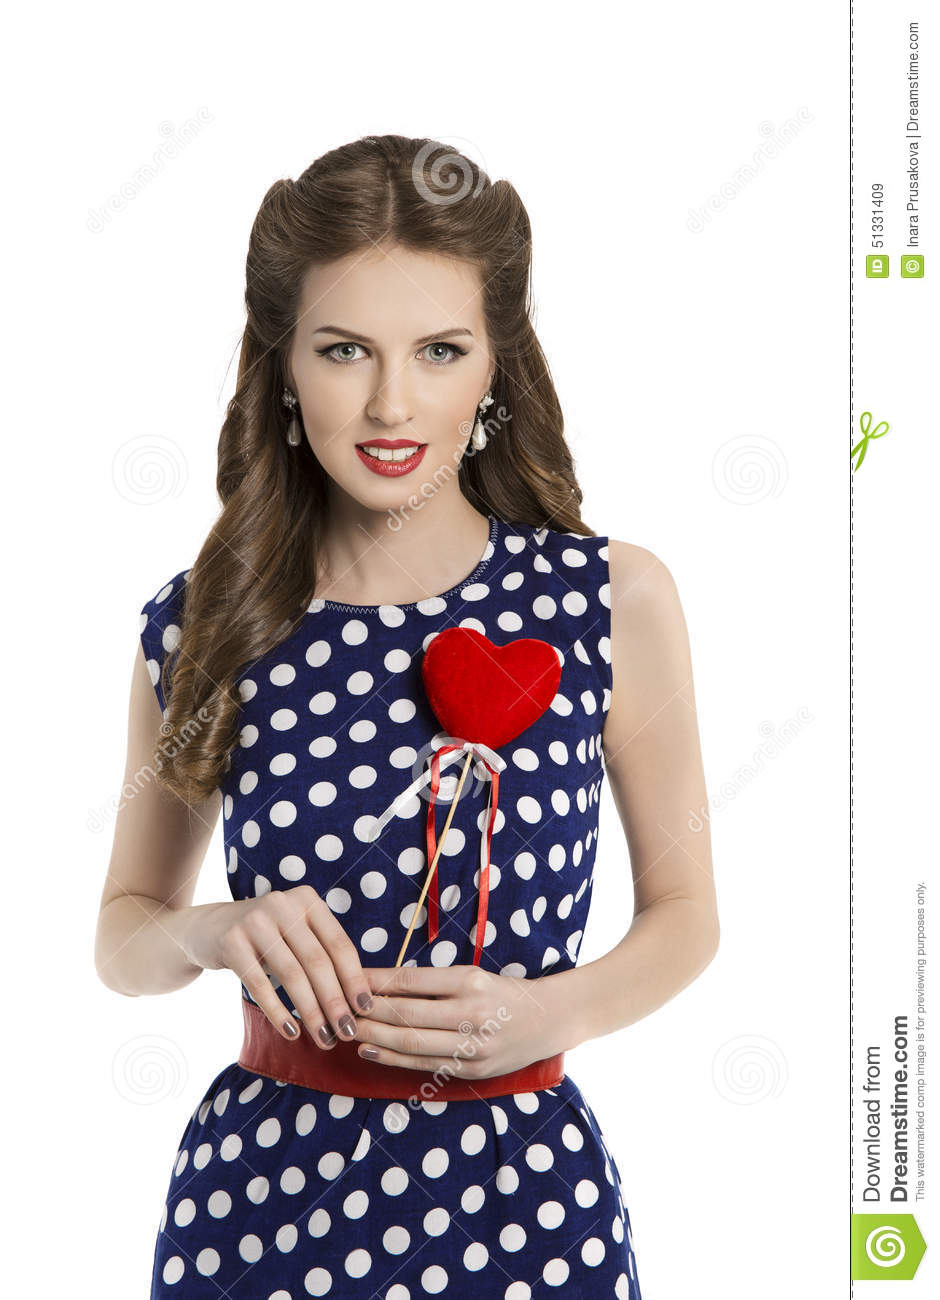 Woman In Polka Dot Dress With Heart Retro Girl Pin Up